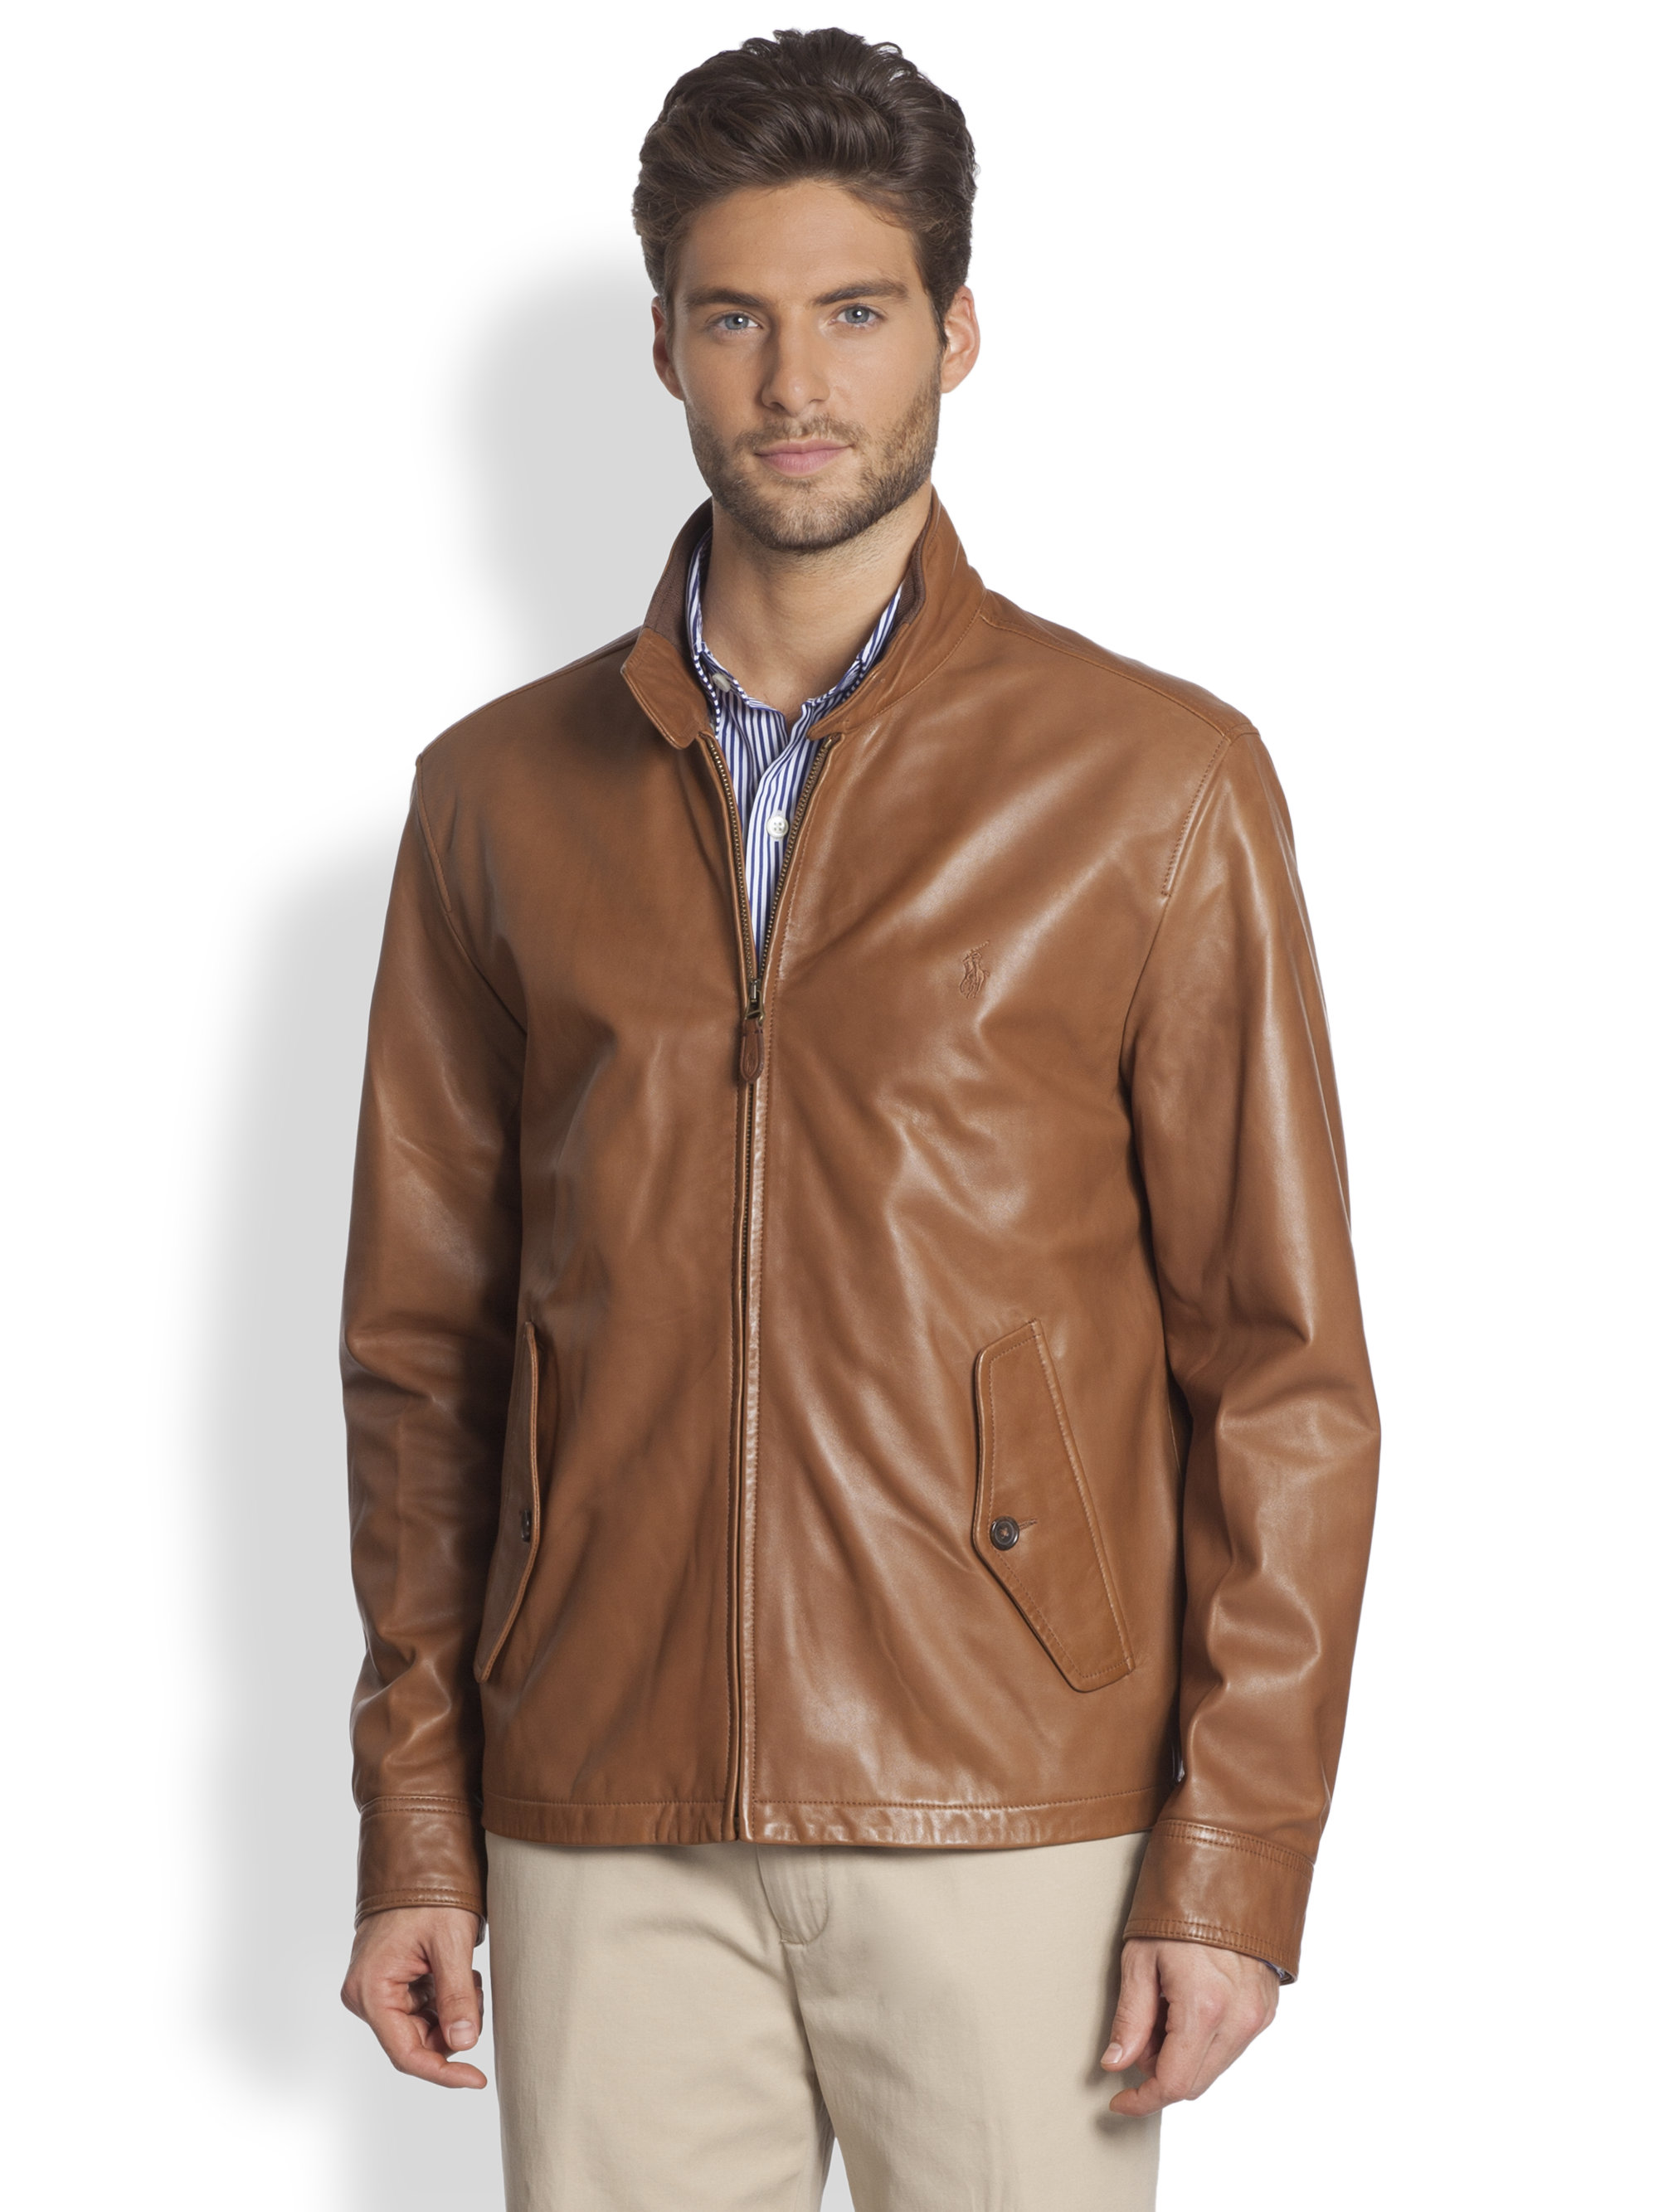 polo ralph lauren leather barracuda jacket in brown for. Black Bedroom Furniture Sets. Home Design Ideas